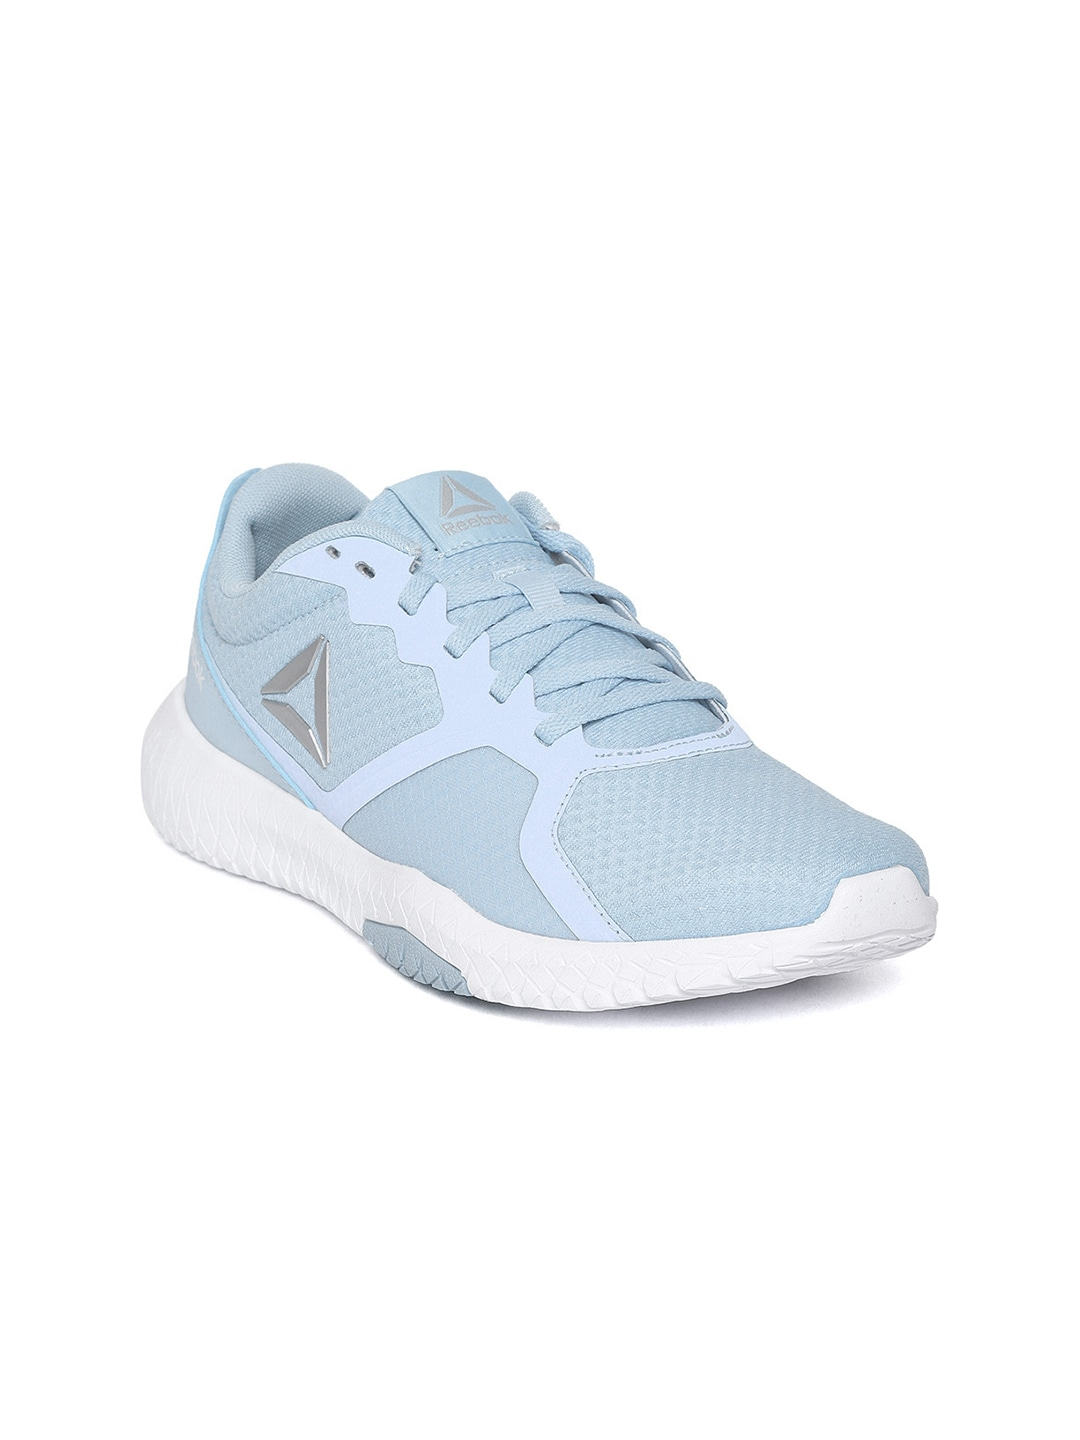 Flexagon Women Blue Training Force Shoes Reebok xsQrhtCd